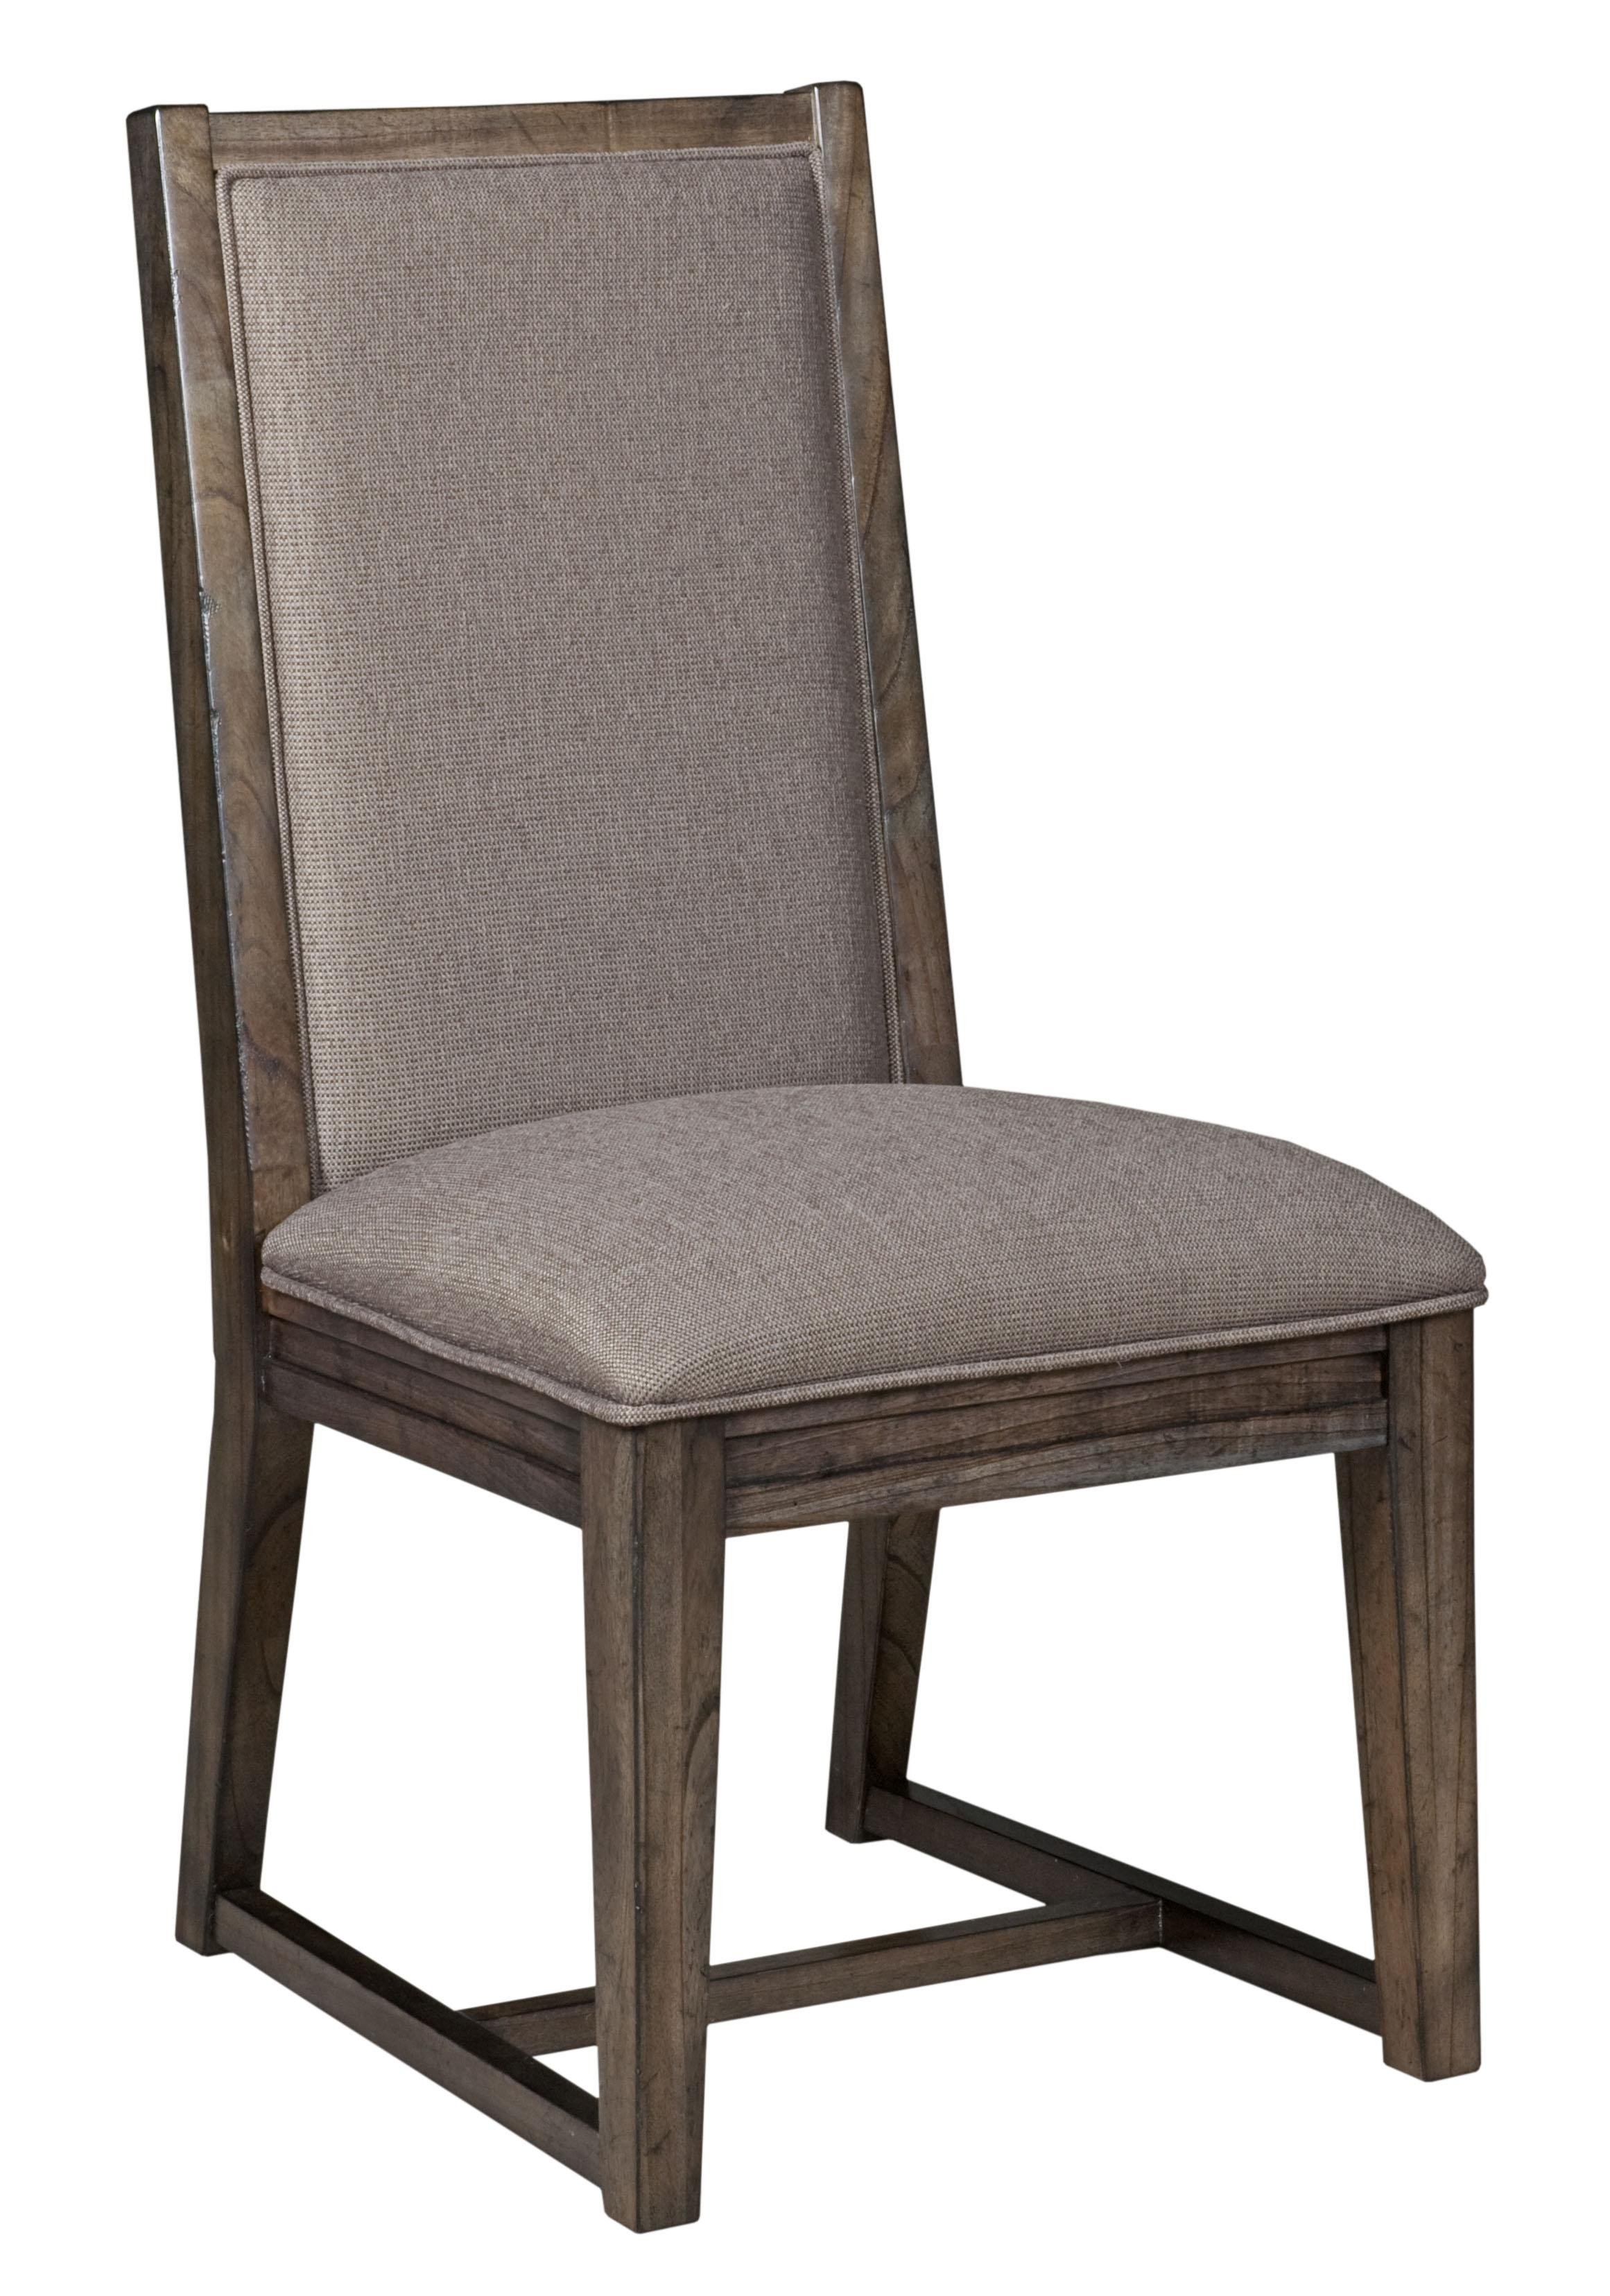 Kincaid Furniture Montreat Arden Upholstered Side Chair - Item Number: 84-065